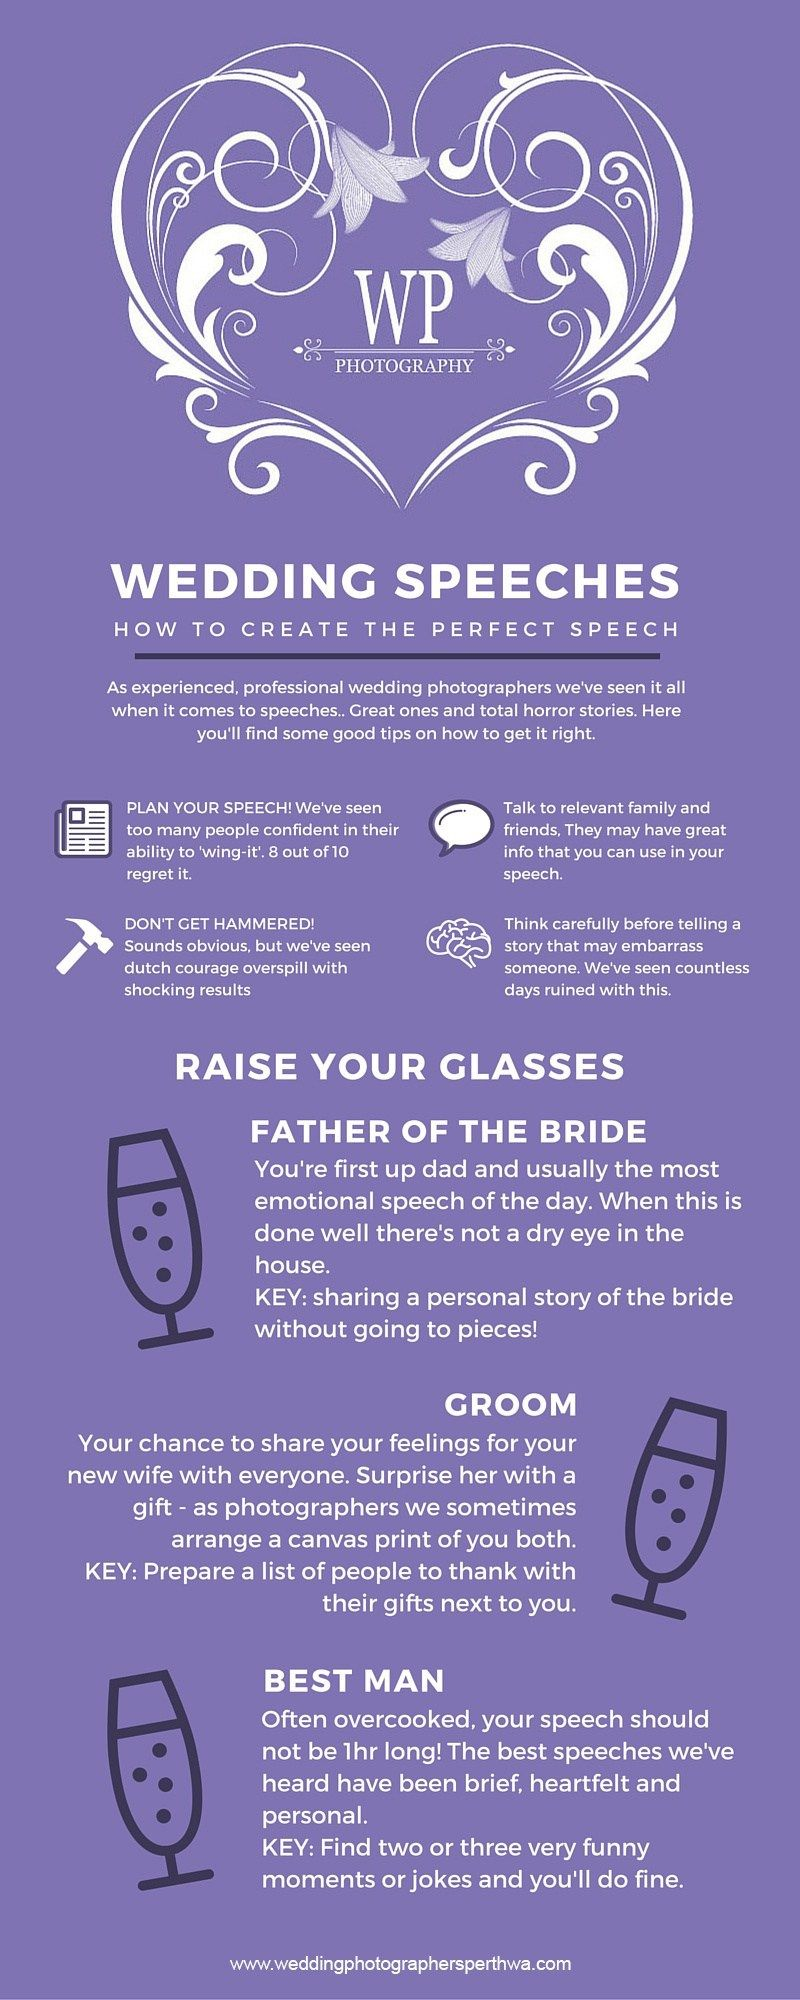 Wedding Sch Tips For Best Man Groom Father Of The Bride And Chief Bridesmaid